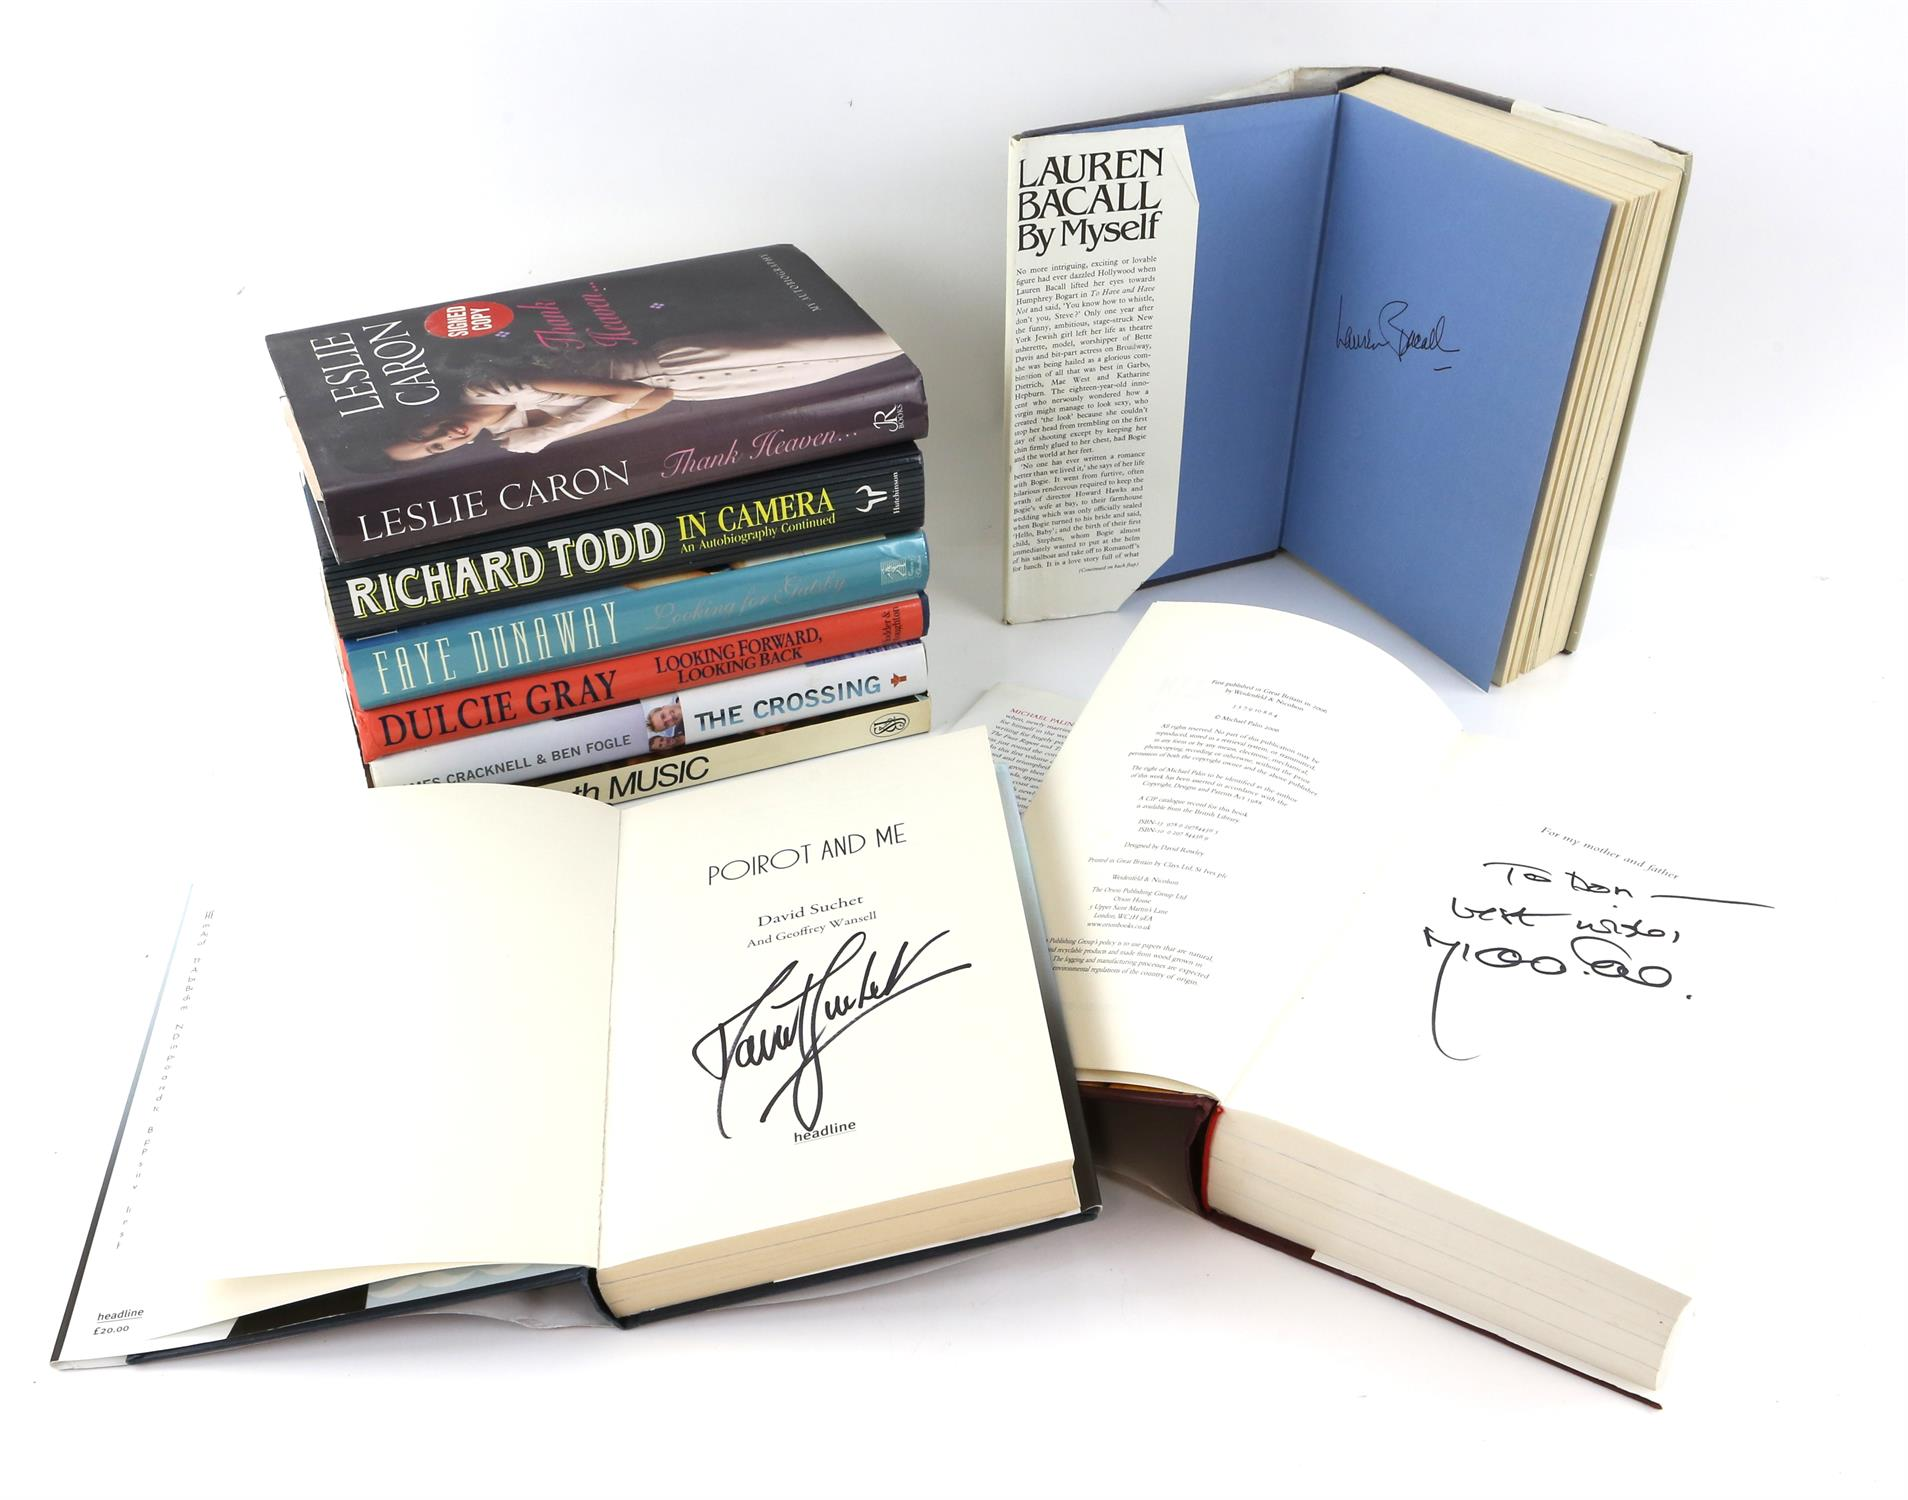 9 autographed books signed by Lauren Bacall, Richard Todd, Michael Palin, Leslie Caron,